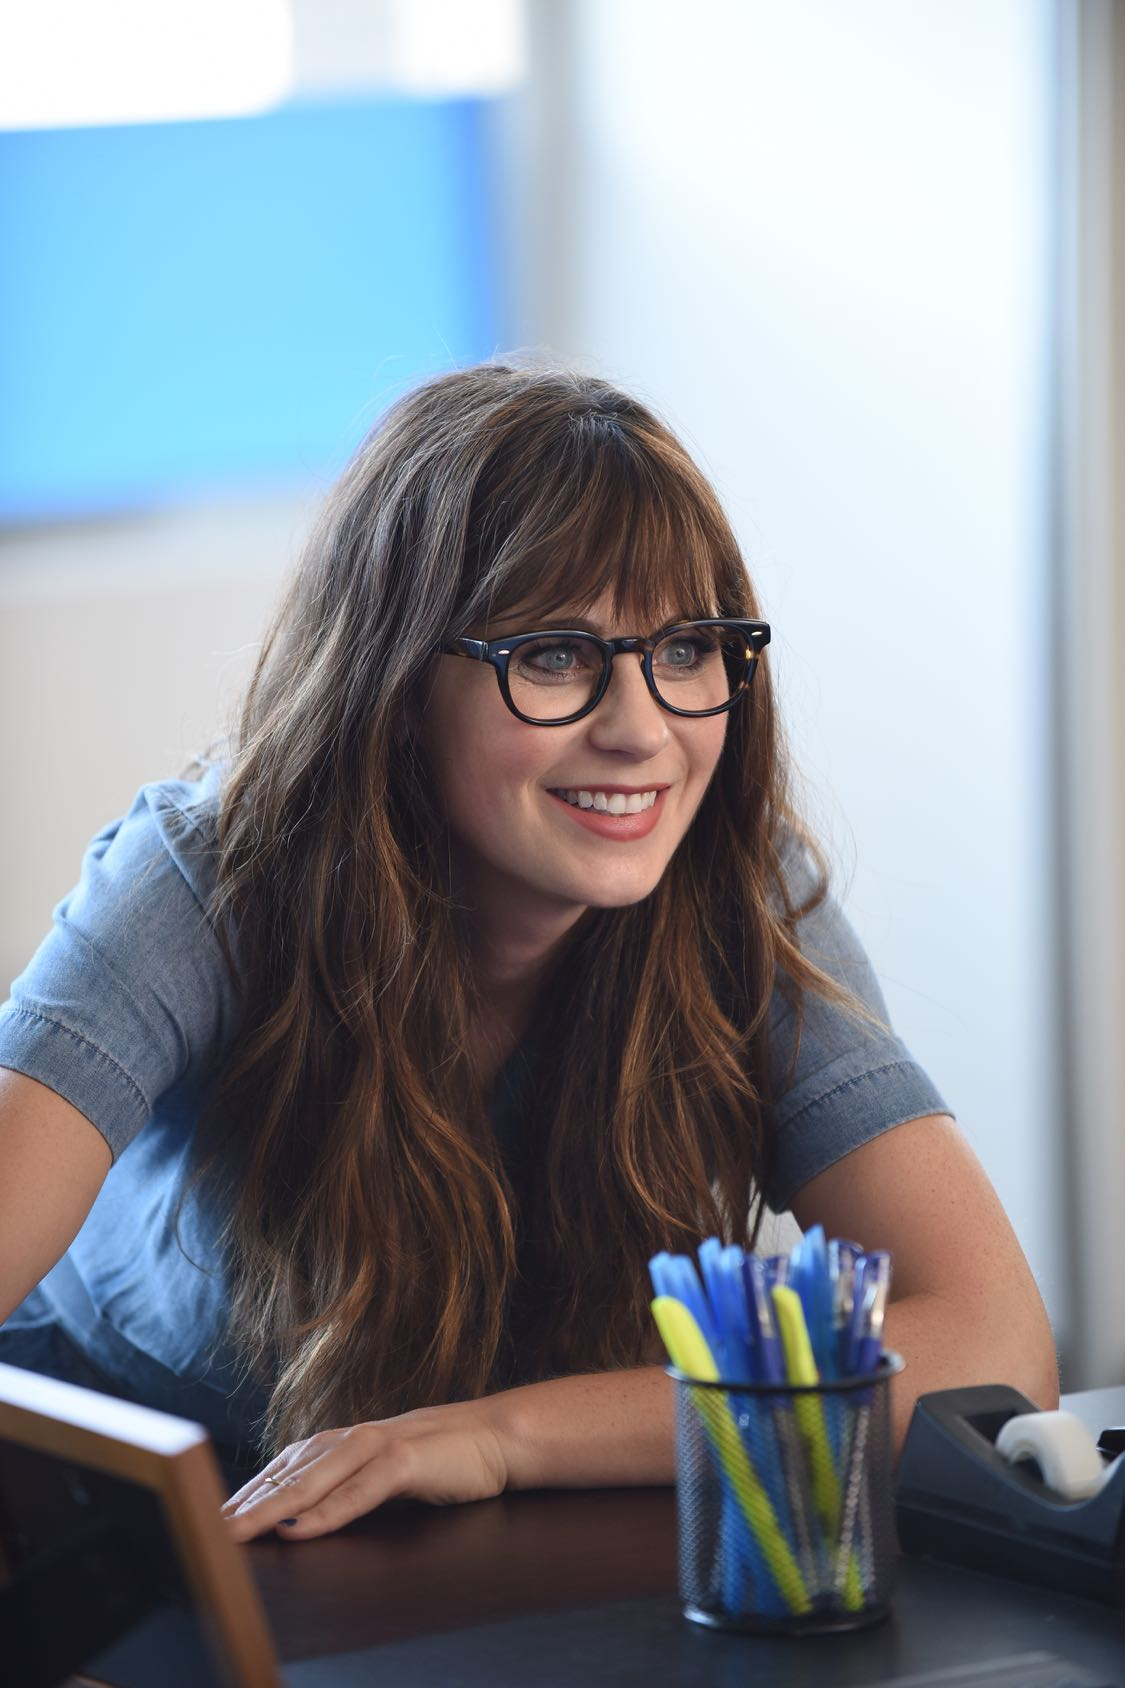 """NEW GIRL: Zooey Deschanel in the """"House Hunt"""" season premiere episode of NEW GIRL airing Tuesday, Sept. 20 (8:30-9:00 PM ET/PT) on FOX. ©2016 Fox Broadcasting Co. Cr: Ray Mickshaw/FOX"""